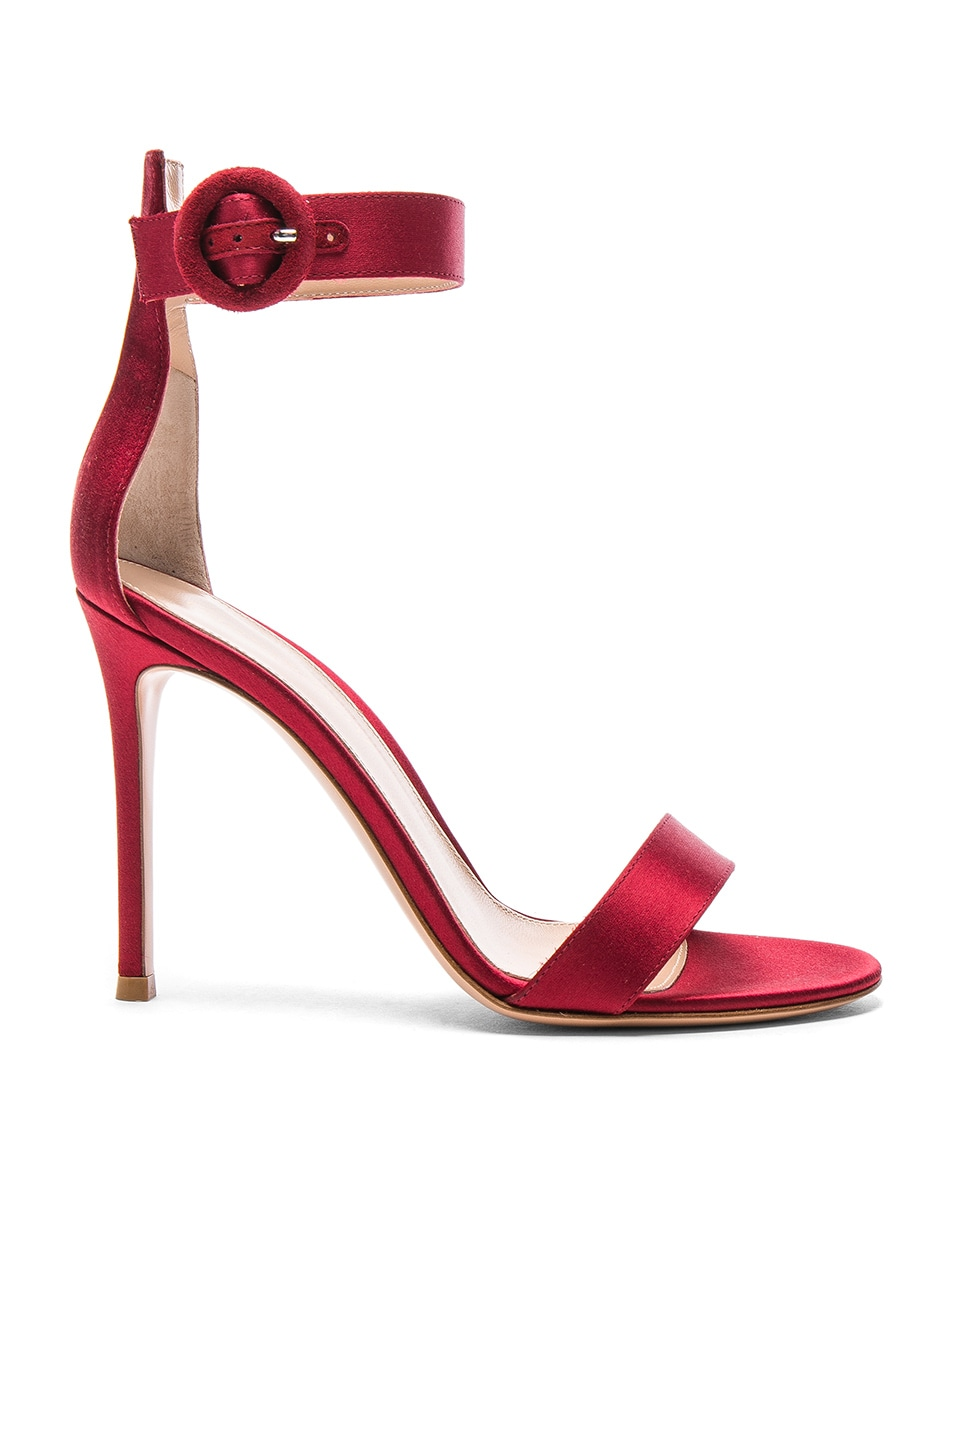 Image 1 of Gianvito Rossi Satin Portofino Heels in Granata